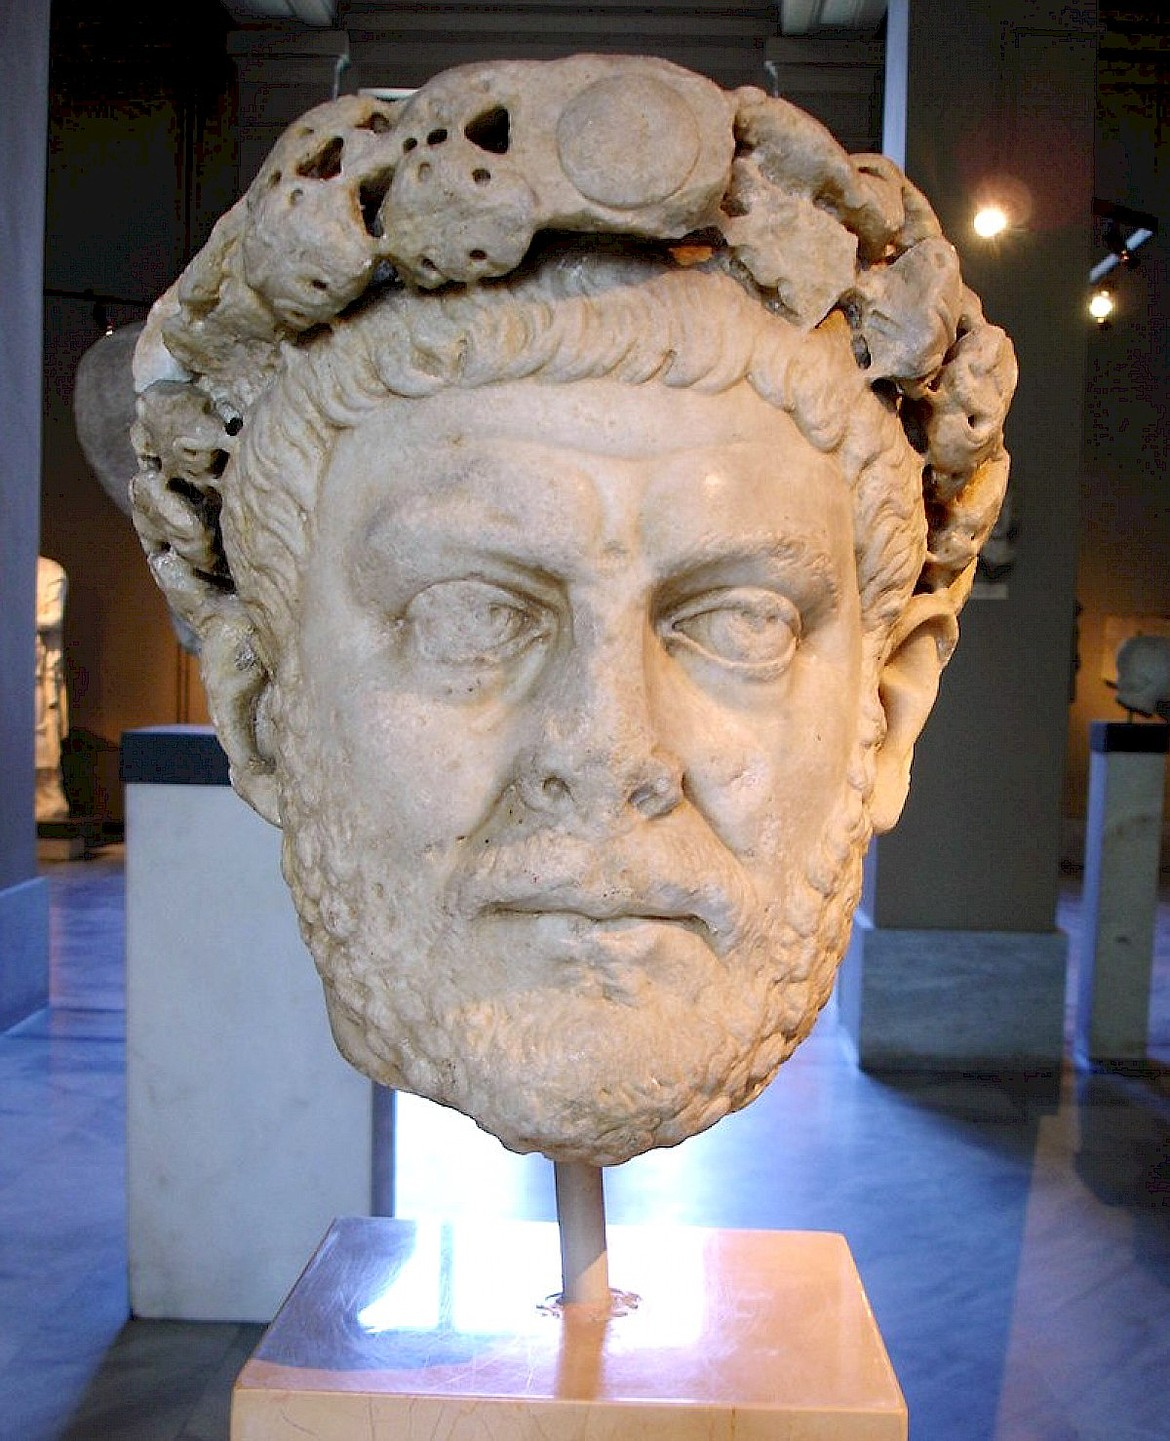 Roman Emperor Diocletian was one of the cruelest persecutors of Christians, with many martyrs buried in Rome's catacombs.